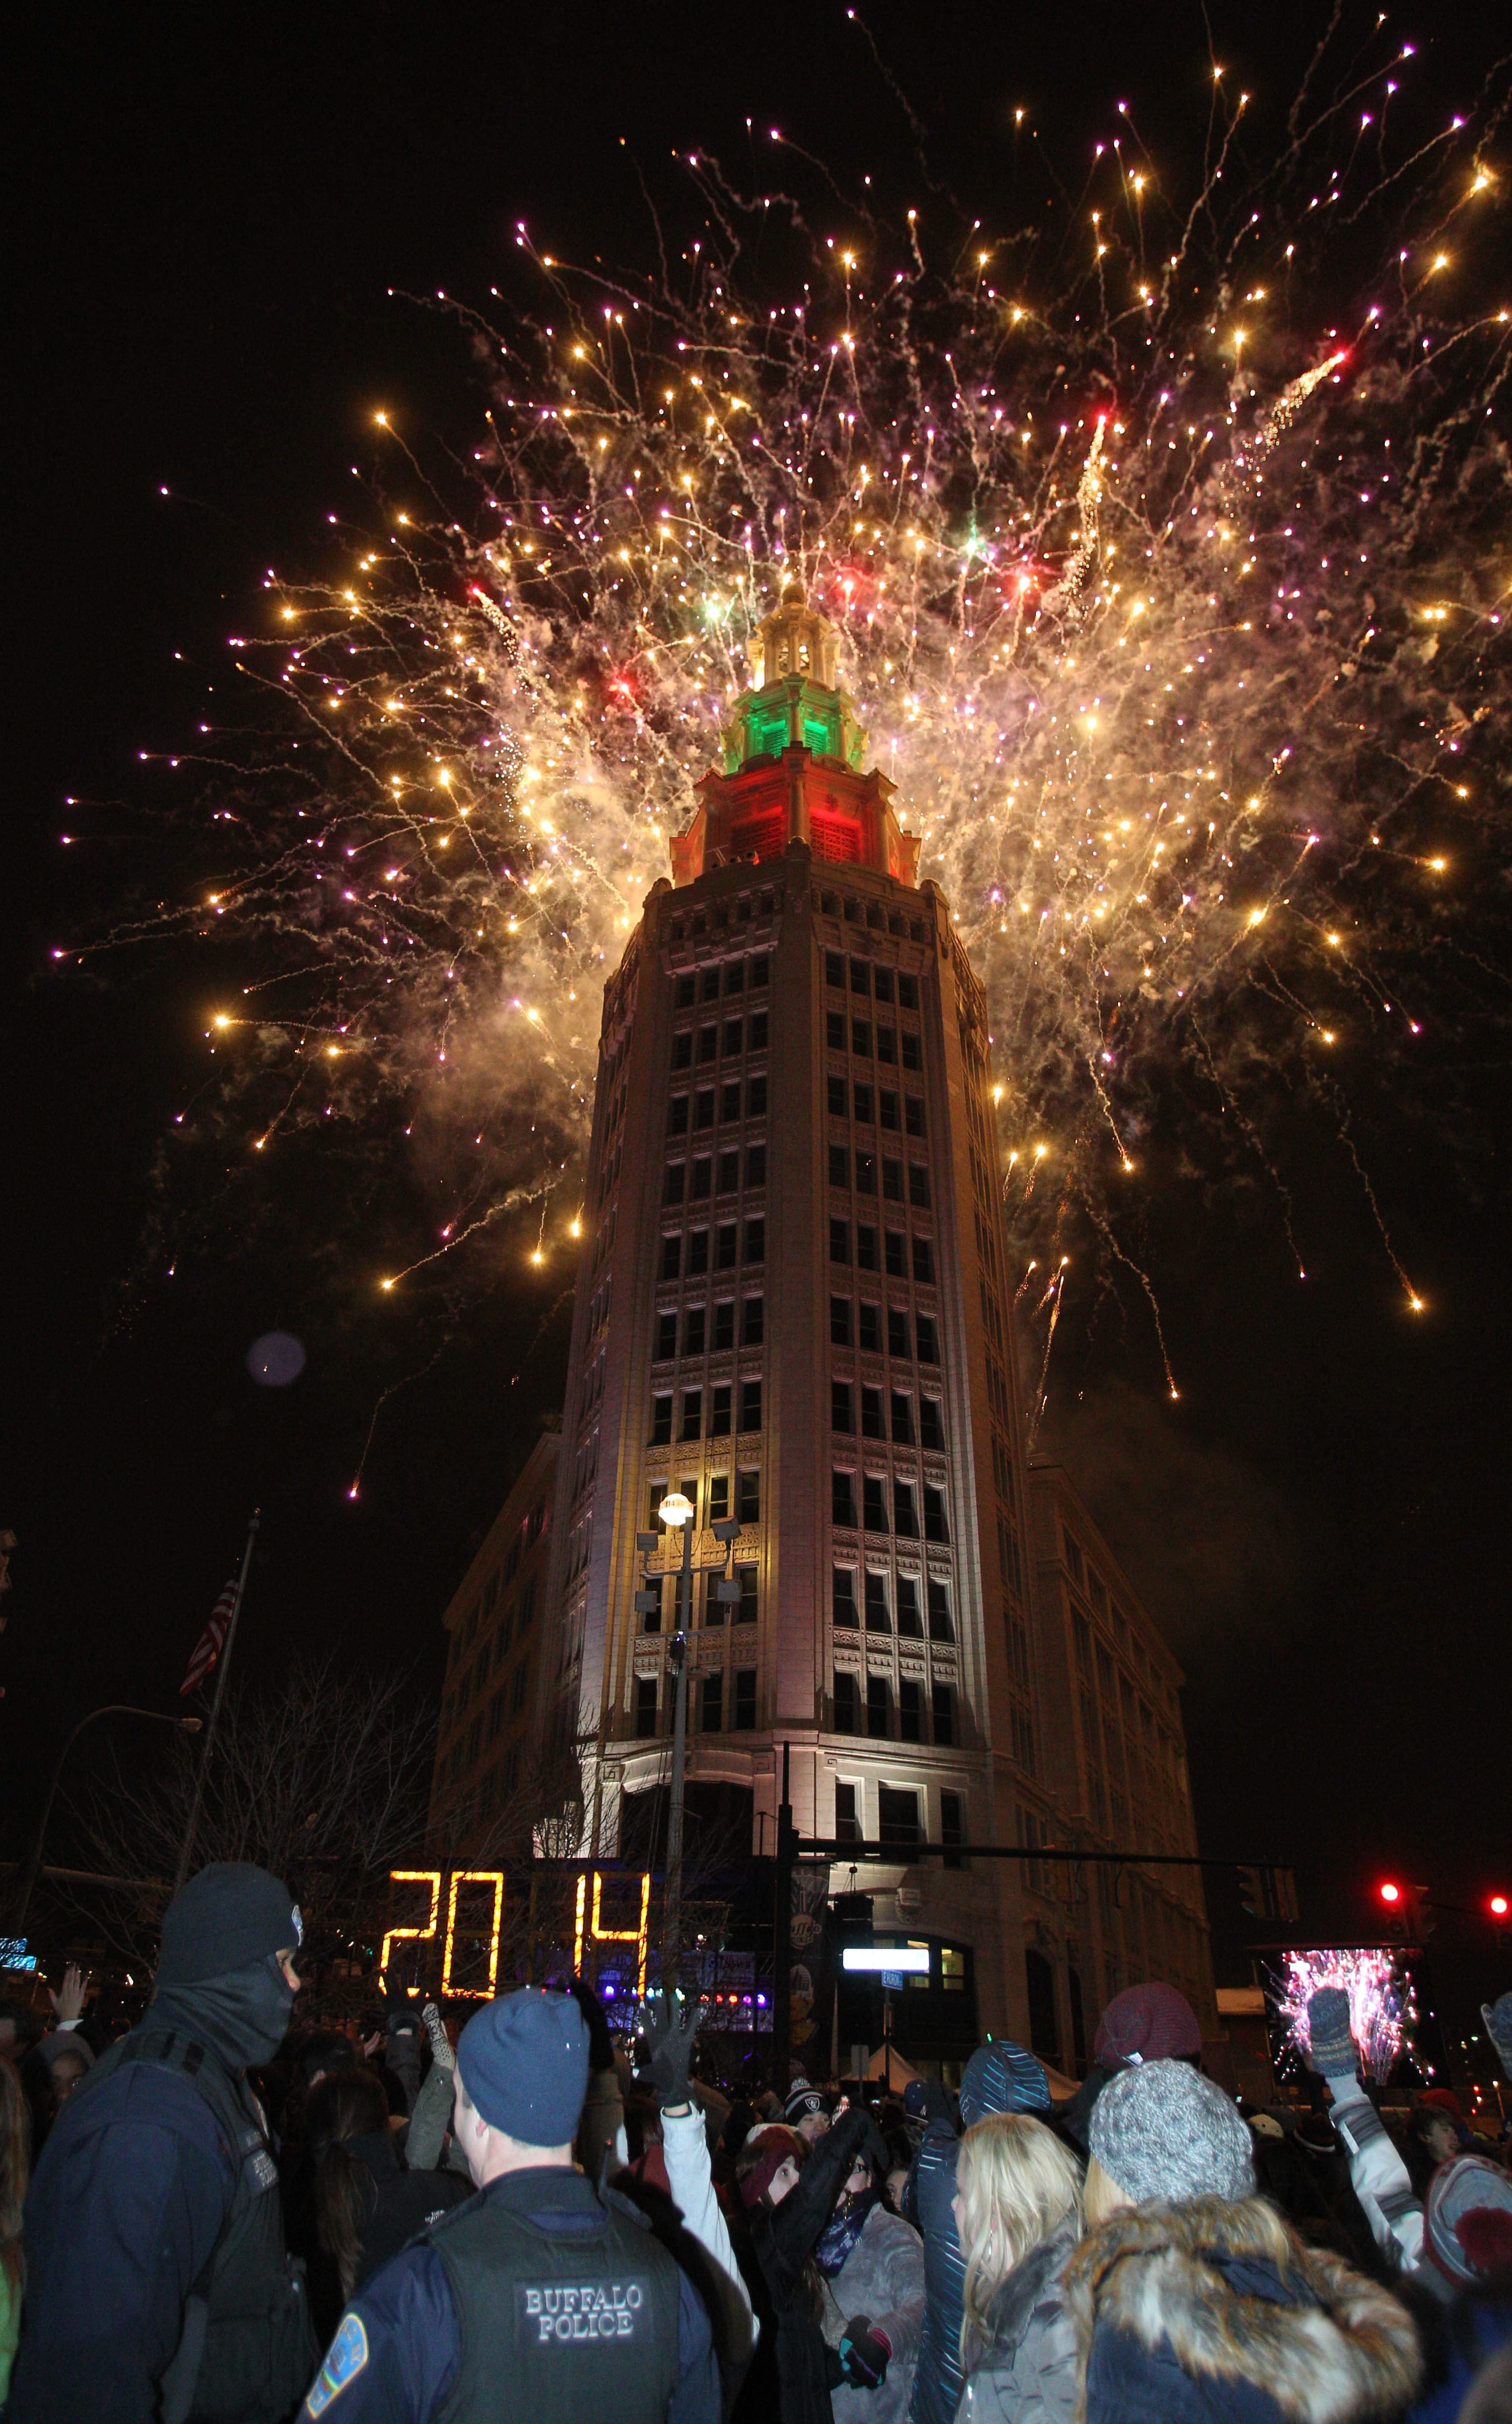 Even though temperatures were in the teens, the annual ball drop from the Electric Tower in downtown Buffalo drew thousands of revelers wanting to bring in the new year, Wednesday, Jan. 1, 2014. As the new year was ushered in, the fireworks display began. This is the finale.  (Sharon Cantillon/Buffalo News)